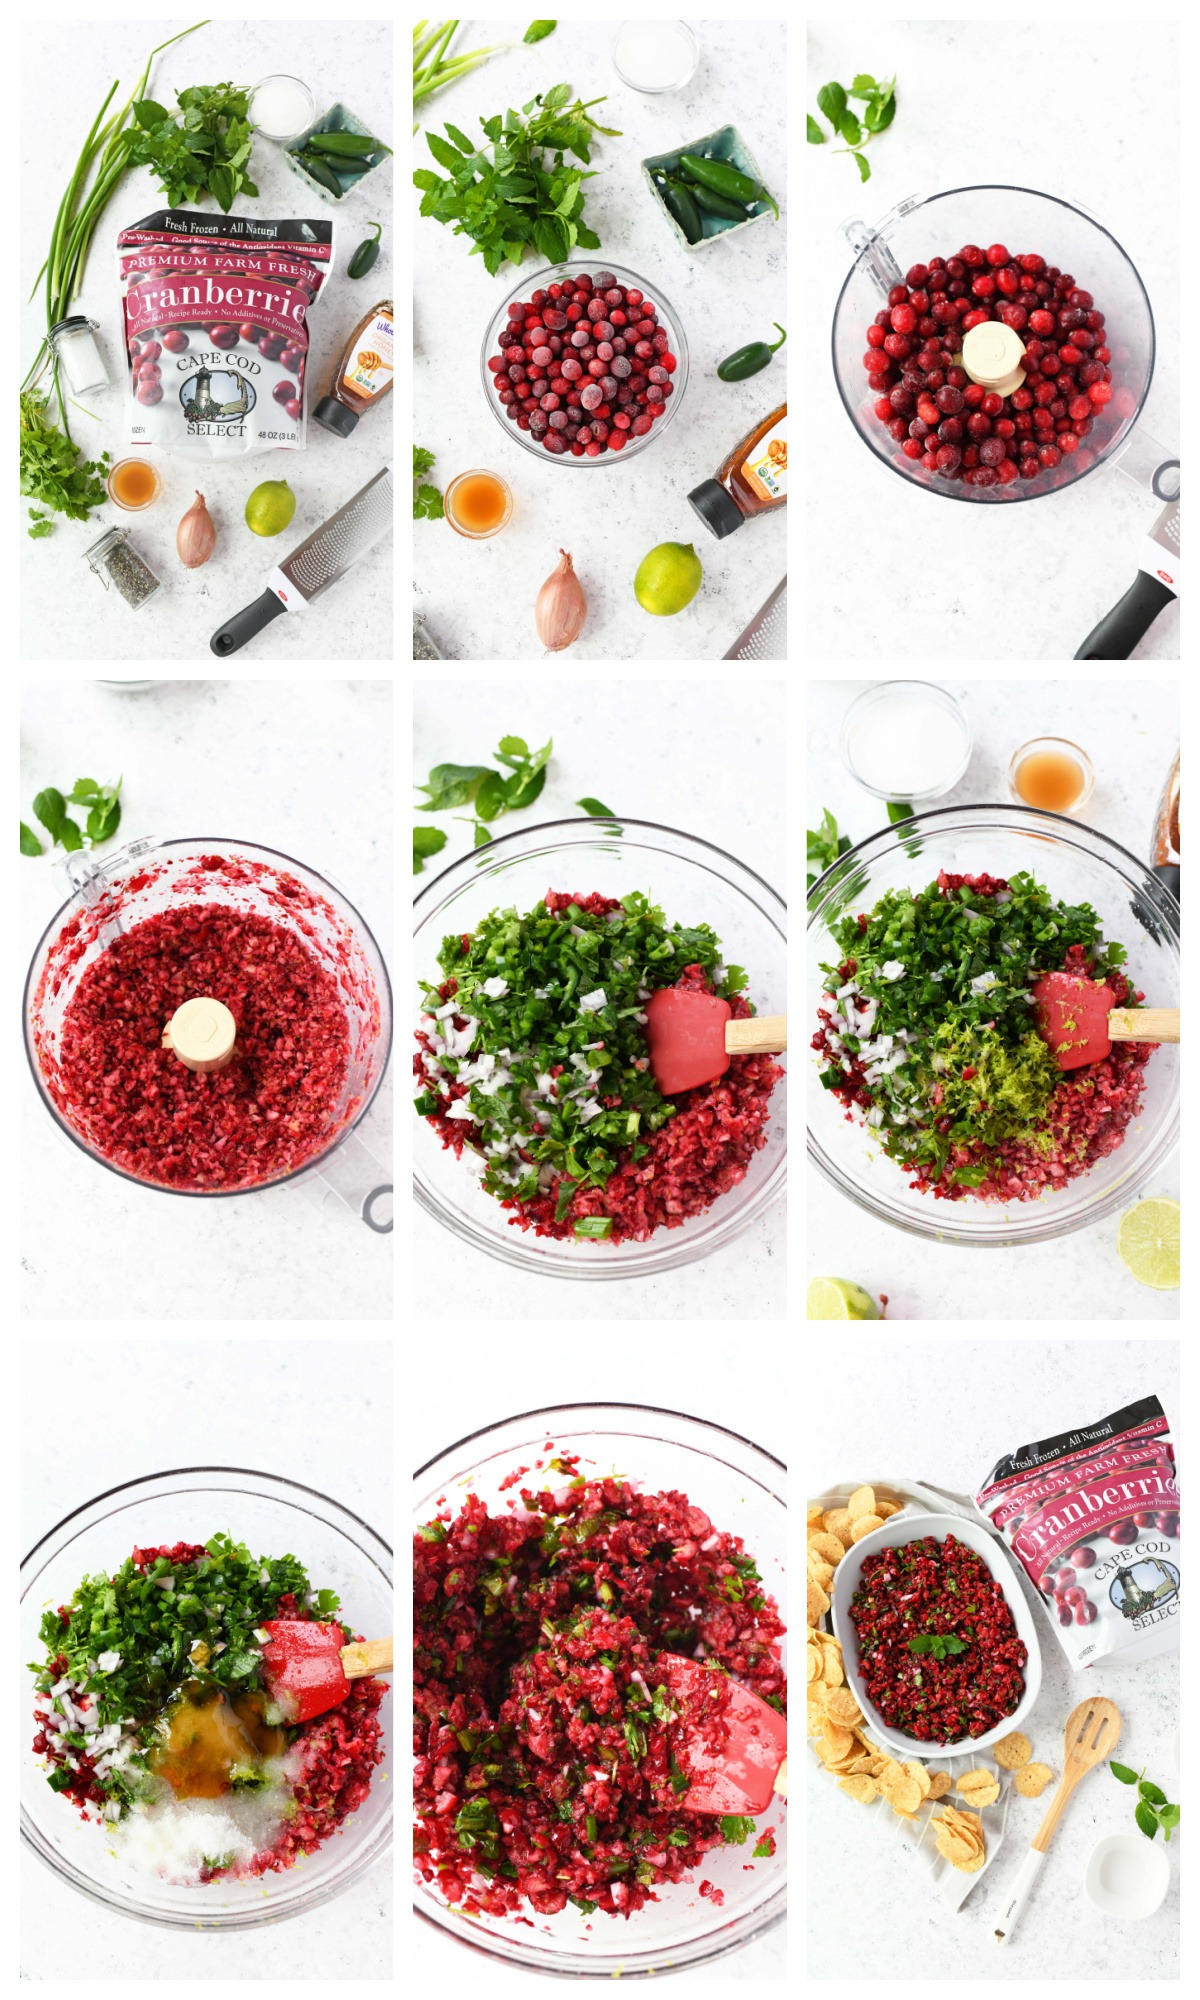 A nine image collage showing the process of making cranberry salsa.